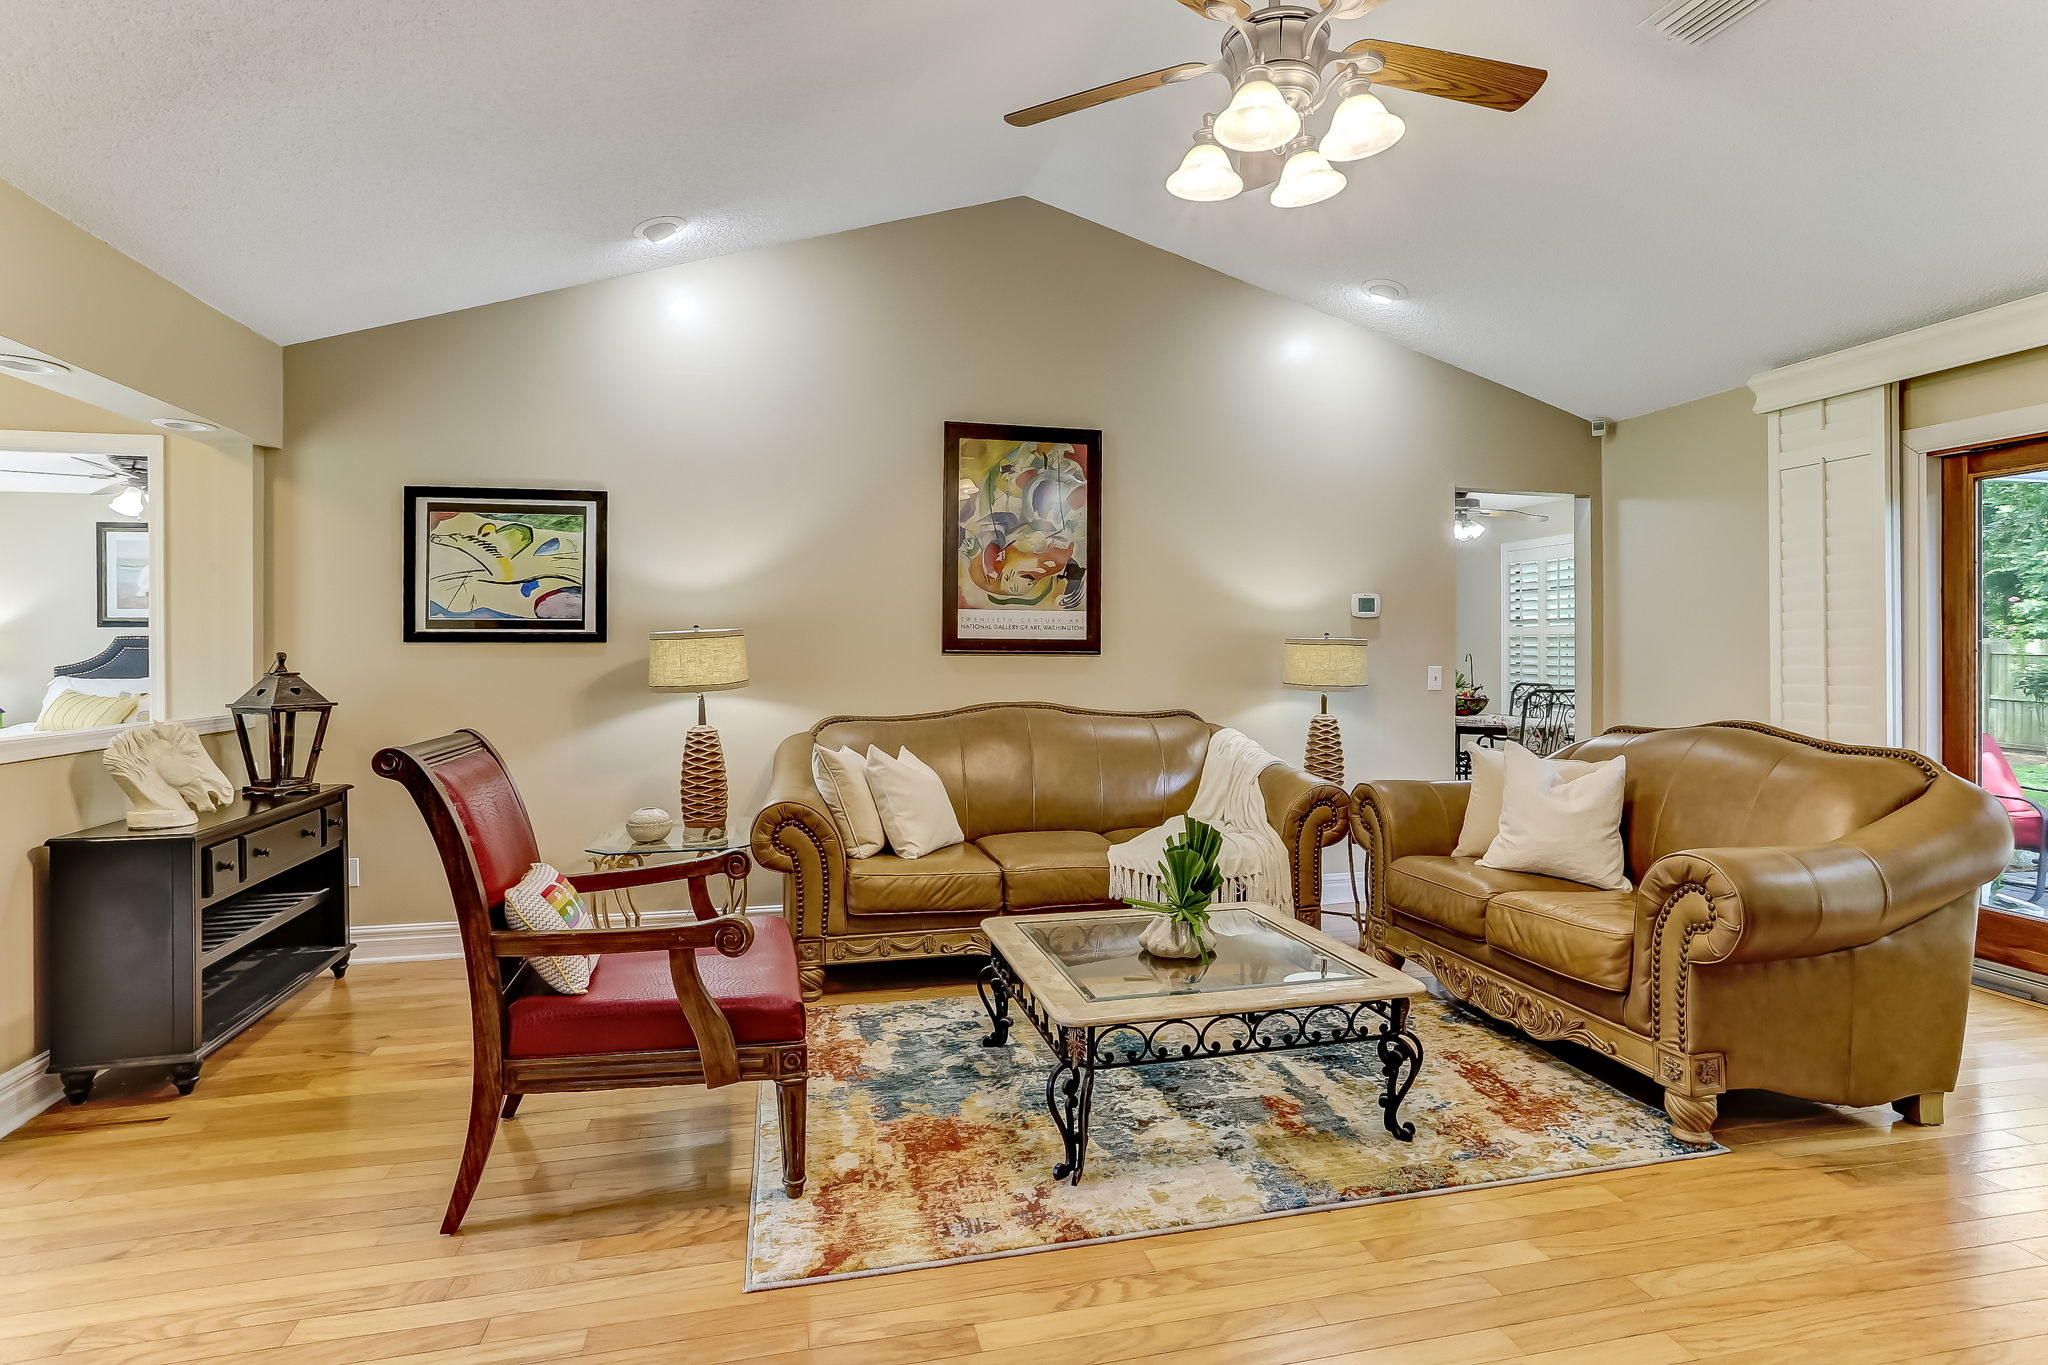 Vaulted ceilings and tons of natural light make for a spacious, bright feel